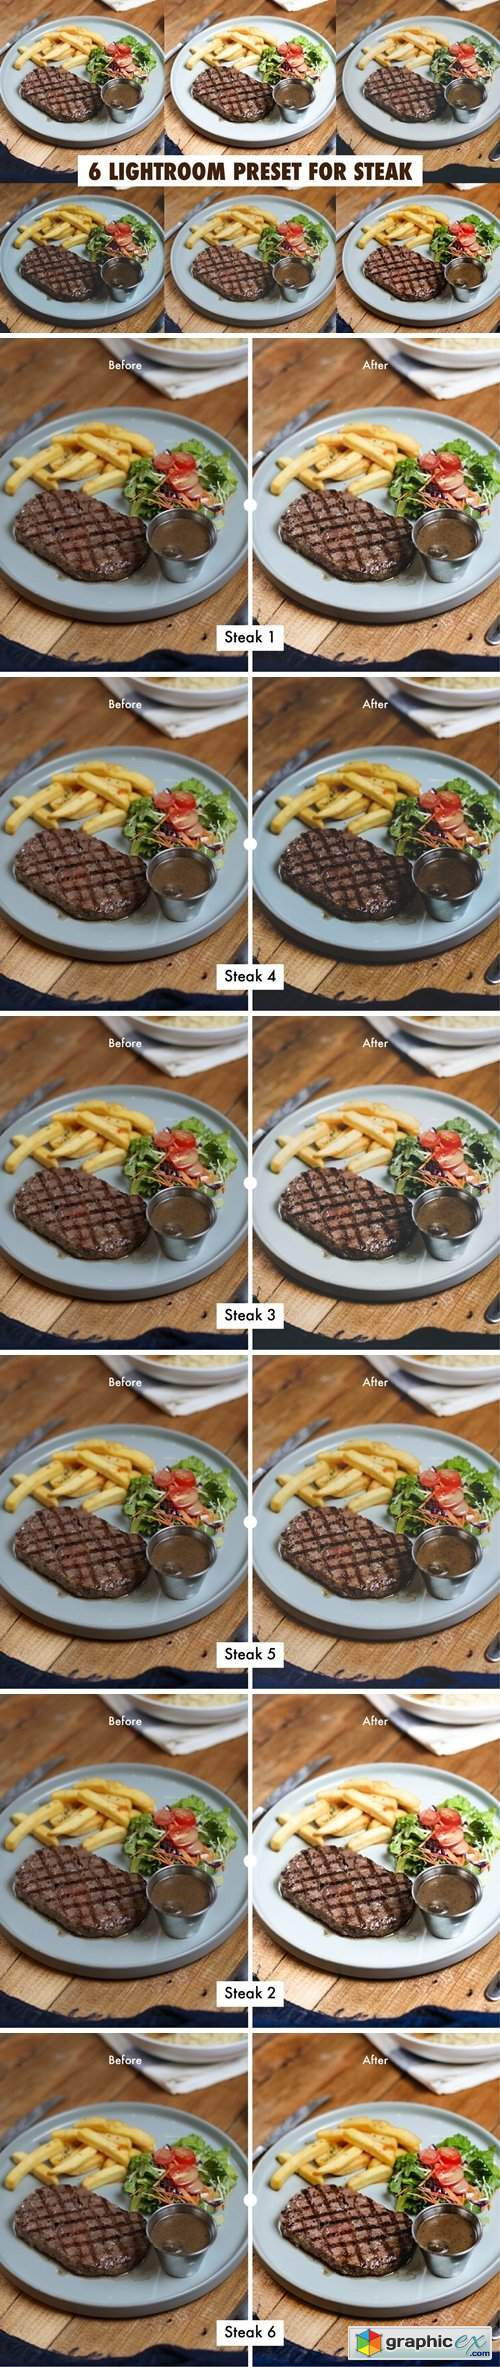 6 Lightroom Preset for Steak